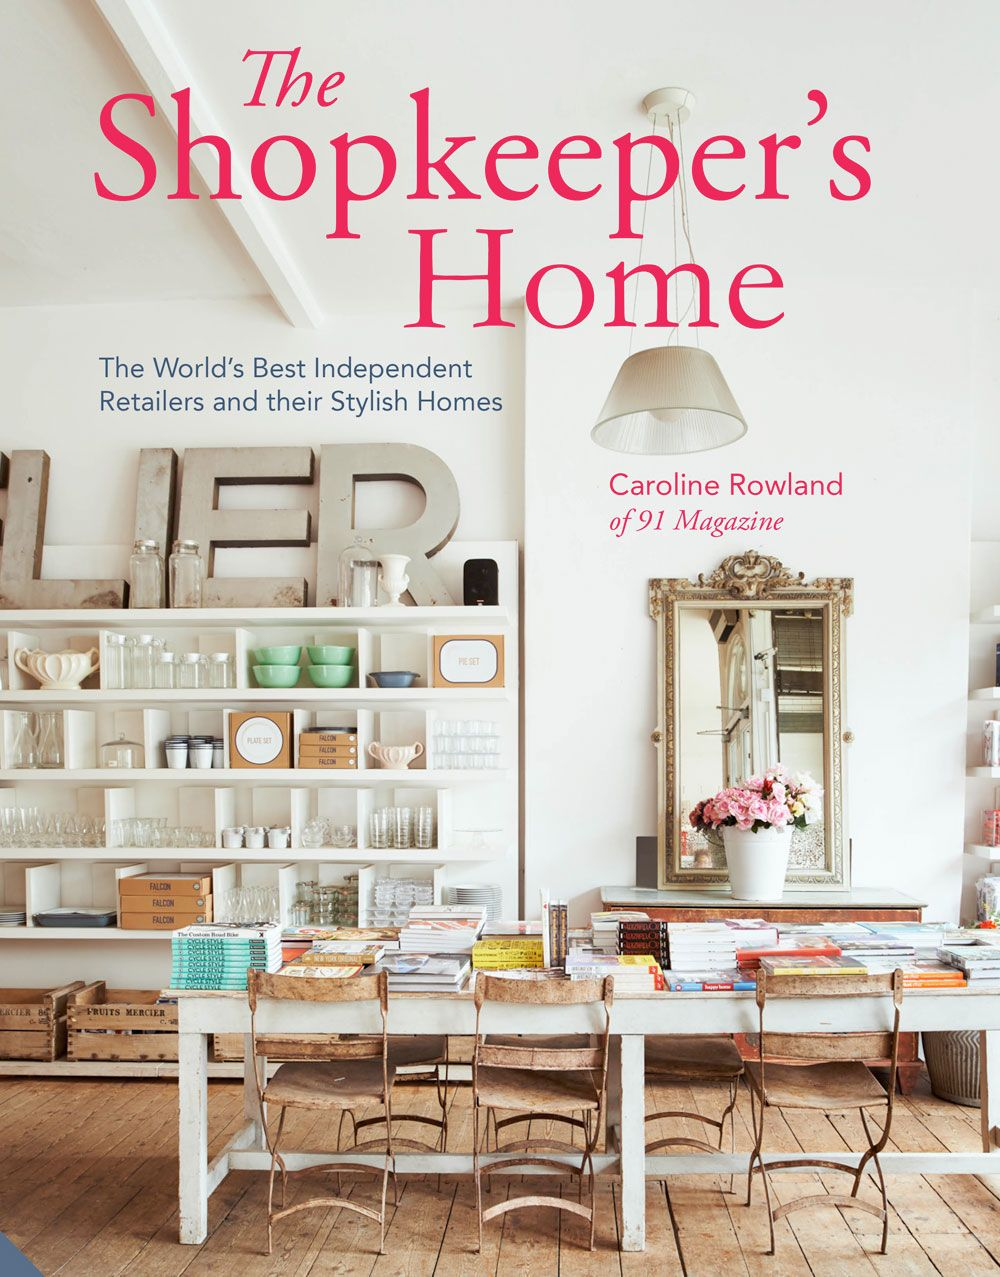 The Shopkeeperu0027s Home, By Caroline Rowland